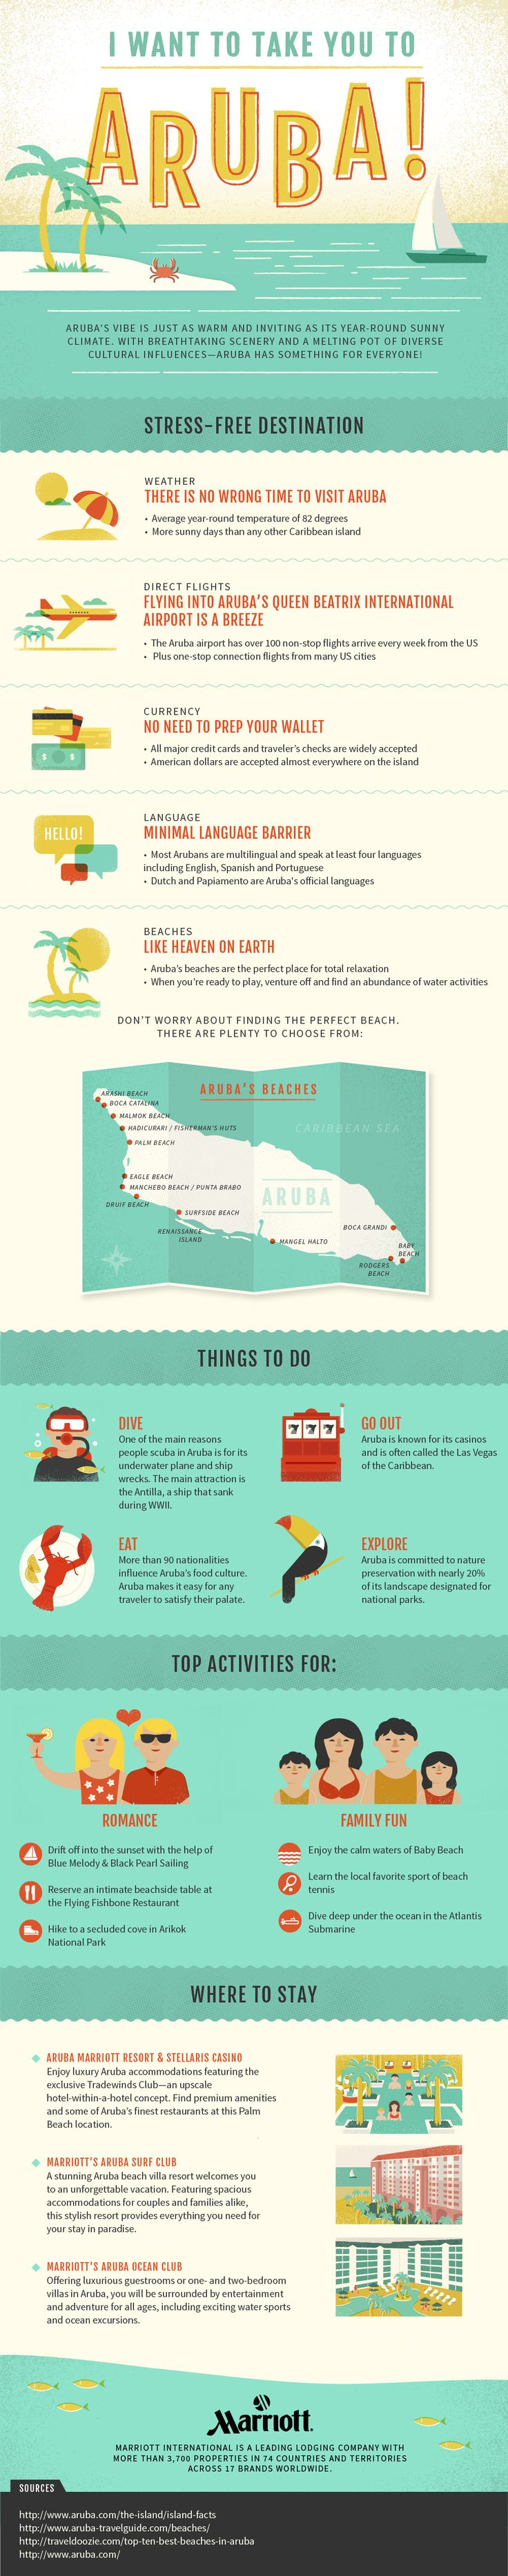 In this infographic, we teamed up with Marriott International to showcase what makes Aruba such a stress-free destination to visit.